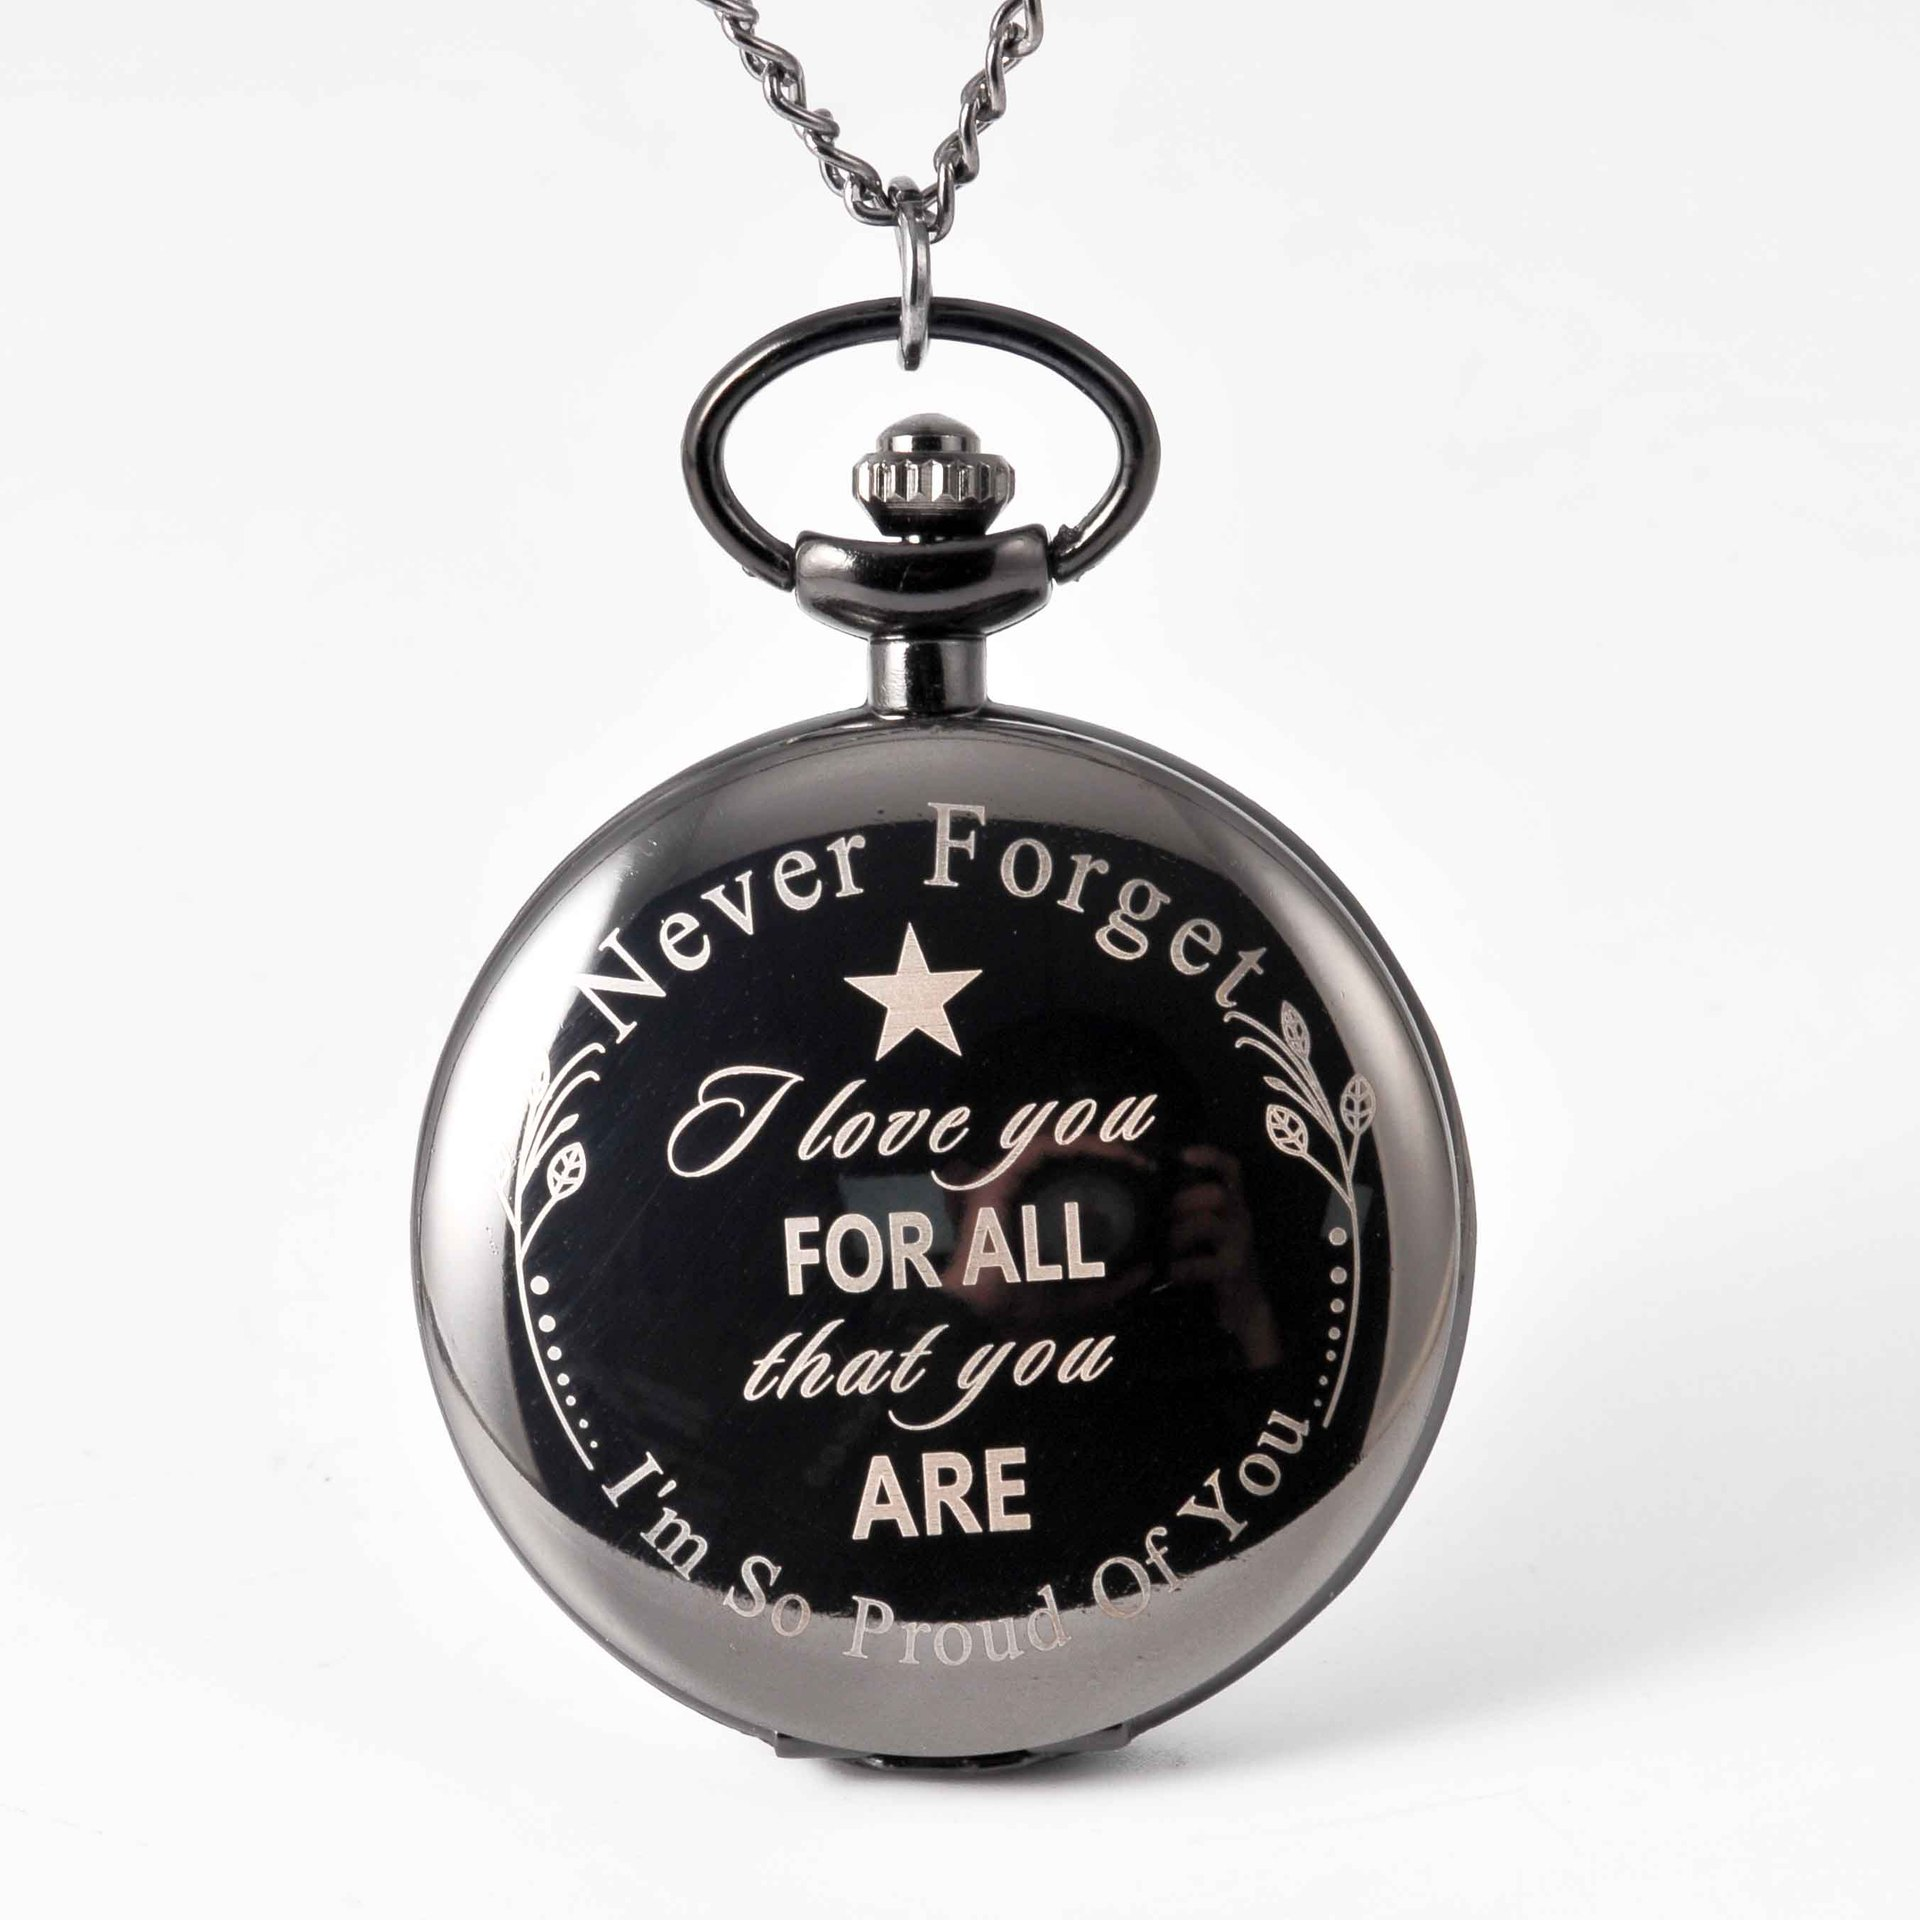 Permalink to Pocket & Fob Watches Never Forget I Love You  Pocket Watch Necklace I Love You Forever Quartz Watch  for  Son's Gift Watch